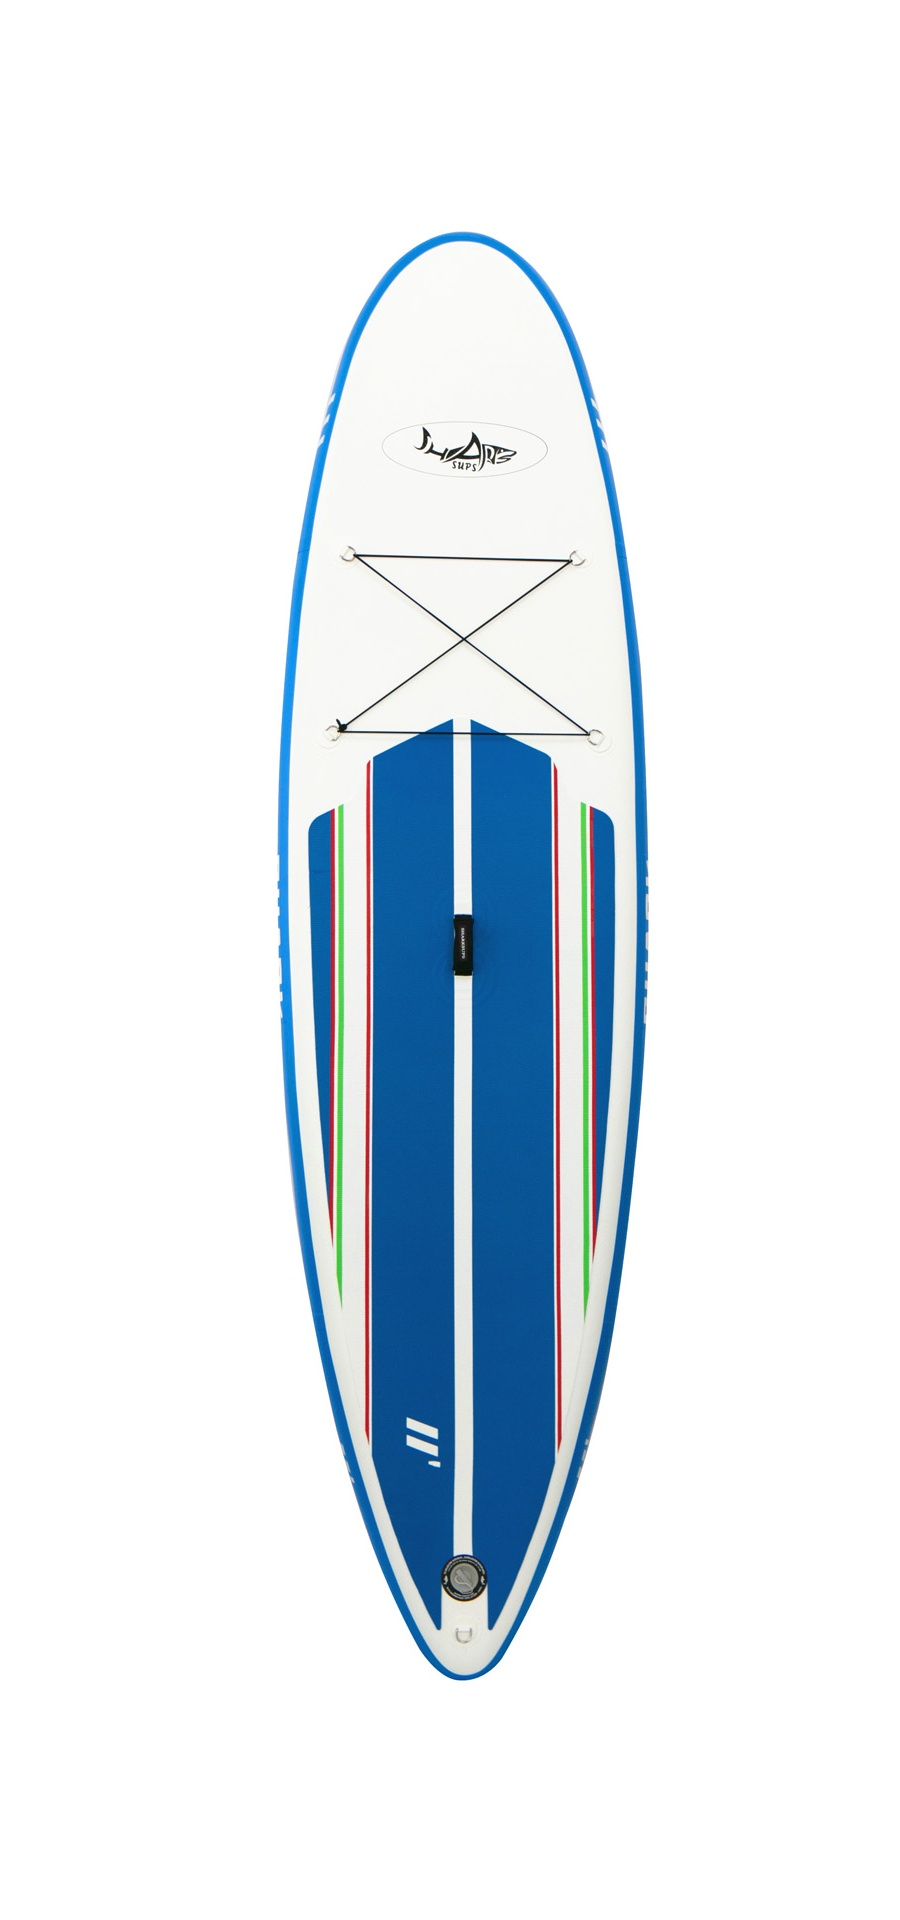 Shark windSUP 11'